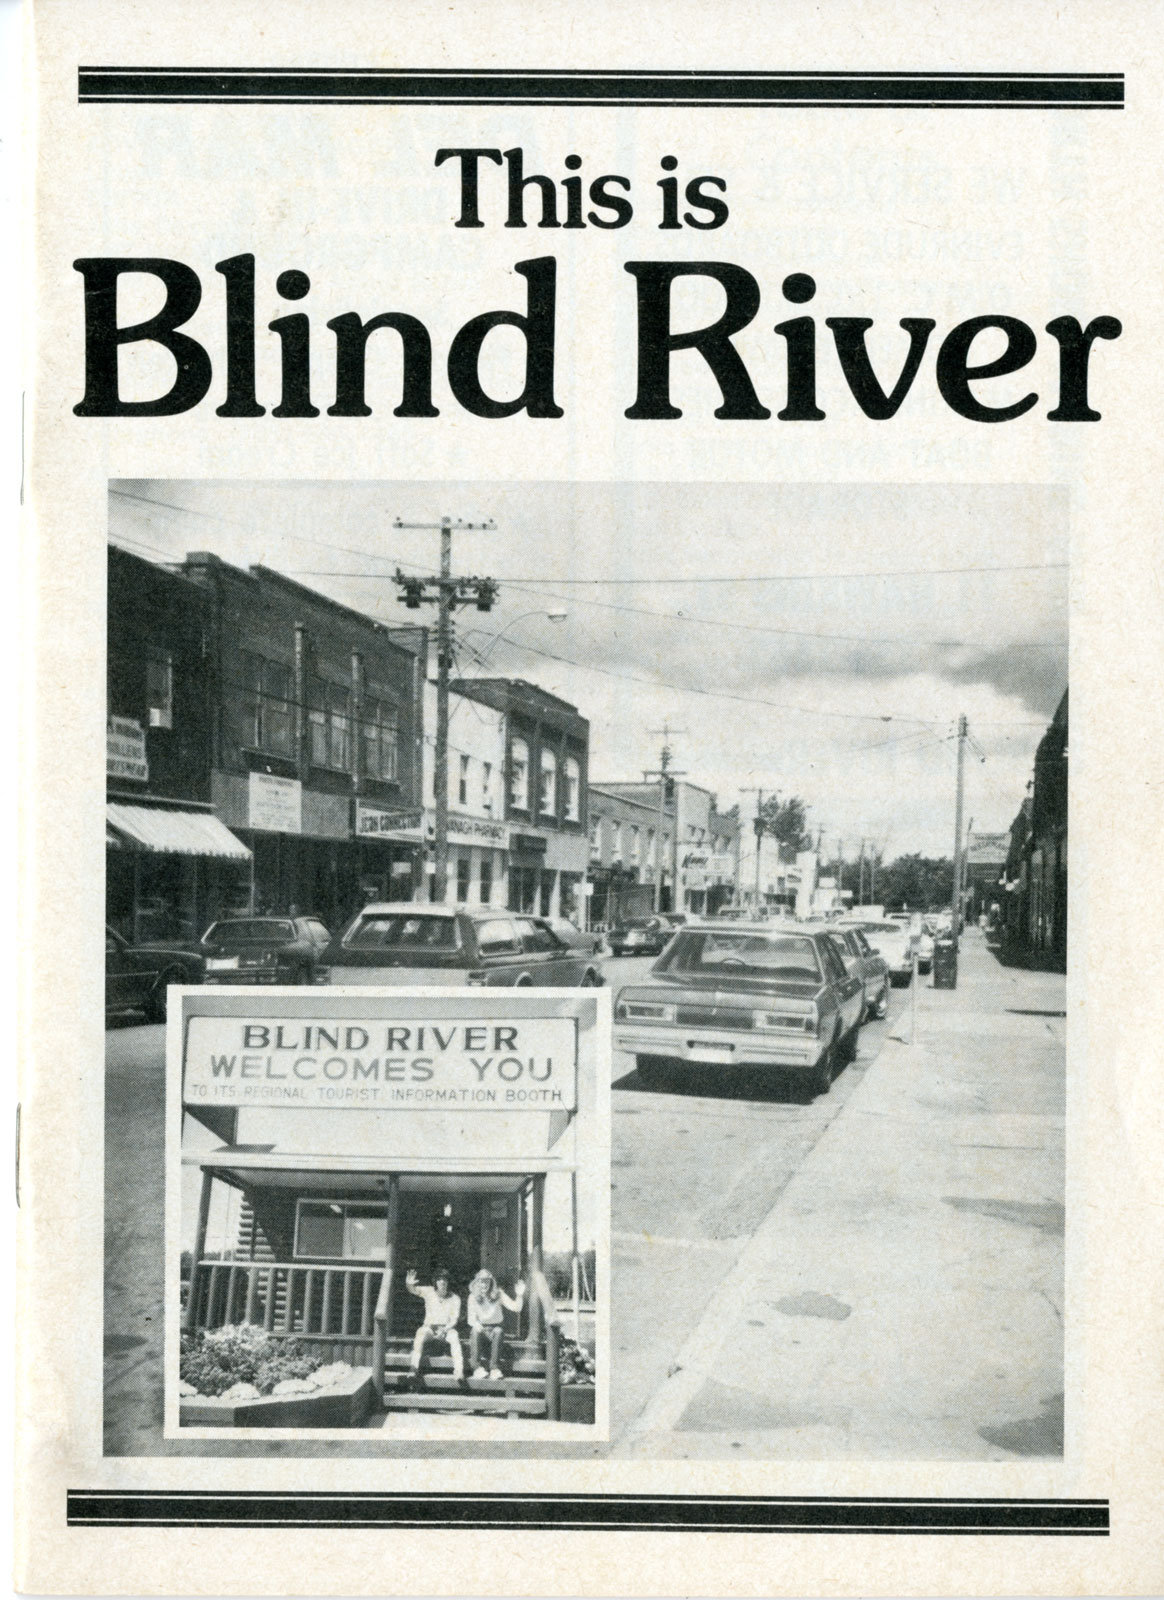 This is Blind River, Circa 1982